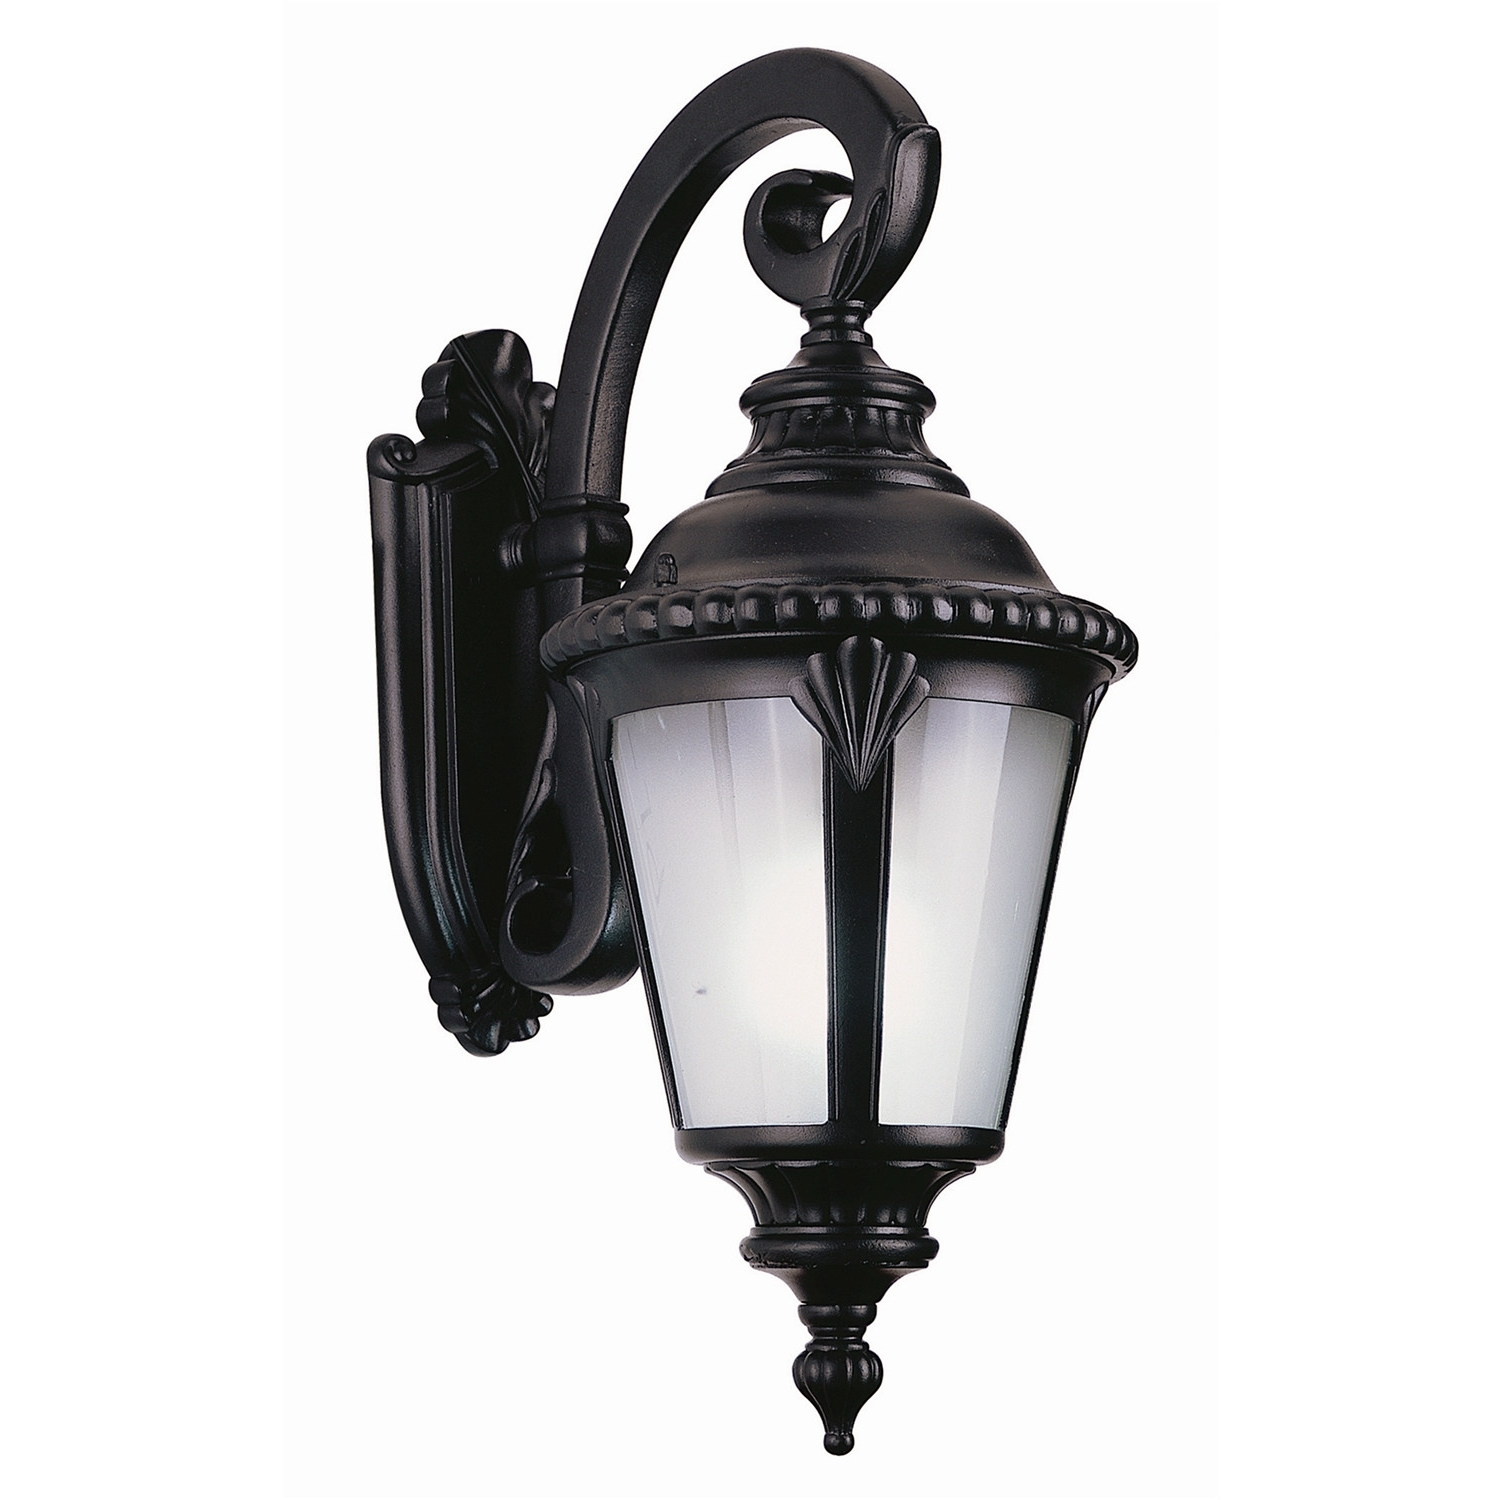 Lighting & Lamps: Trans Globe Lighting 2 Light Outdoor Burnished Regarding Current Outdoor Wall Lantern By Transglobe Lighting (View 20 of 20)